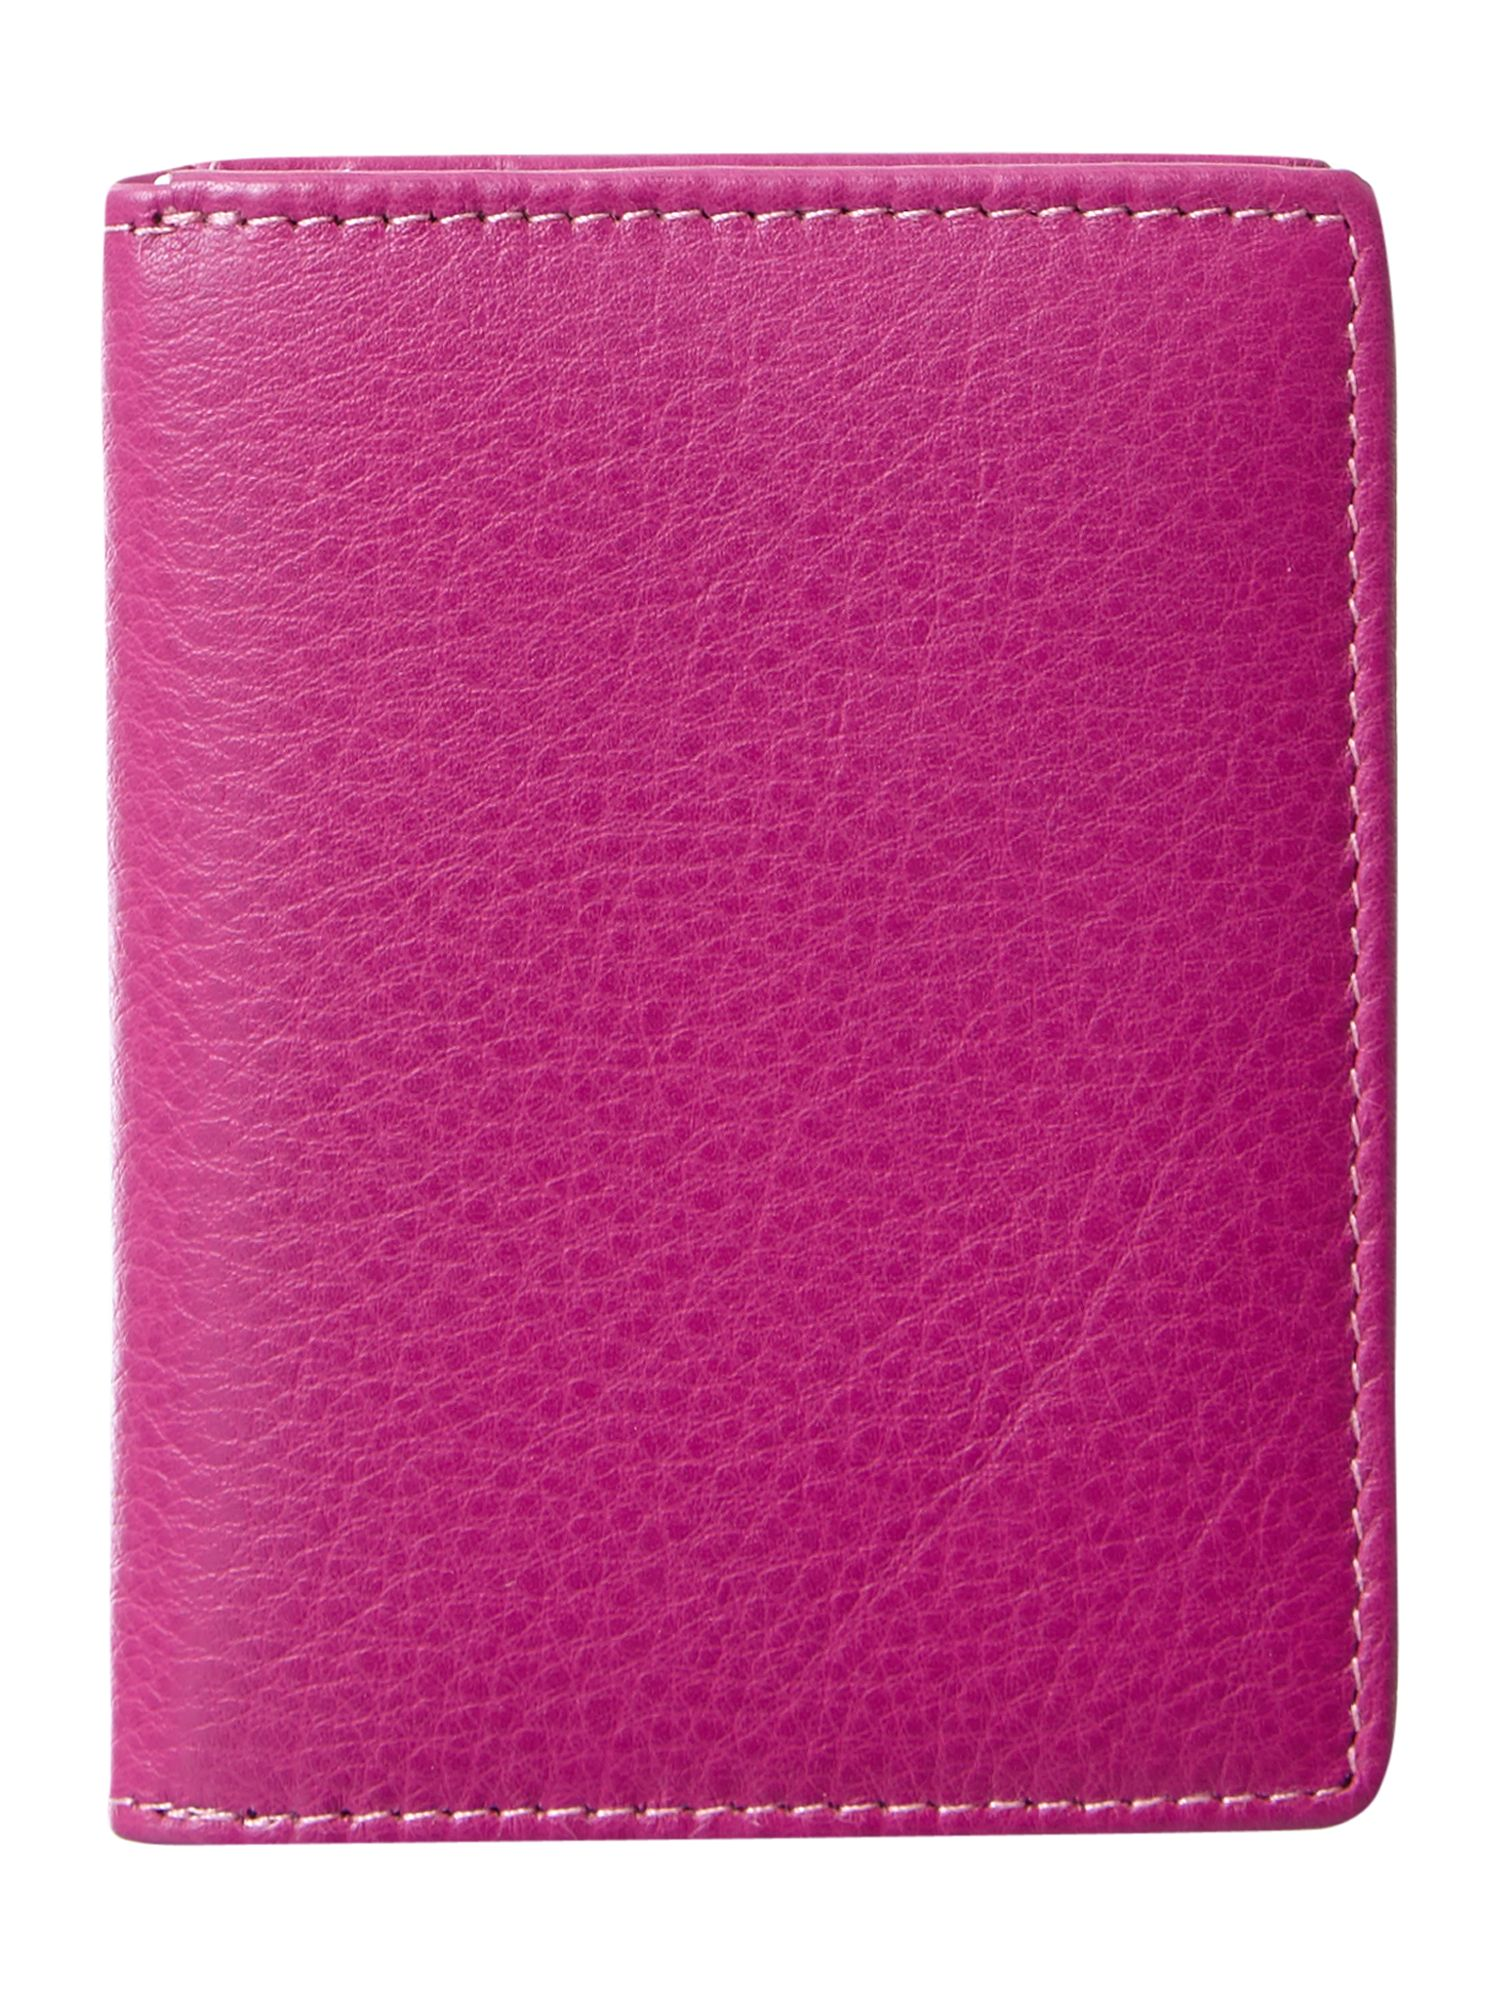 Pink with spot internal card holder